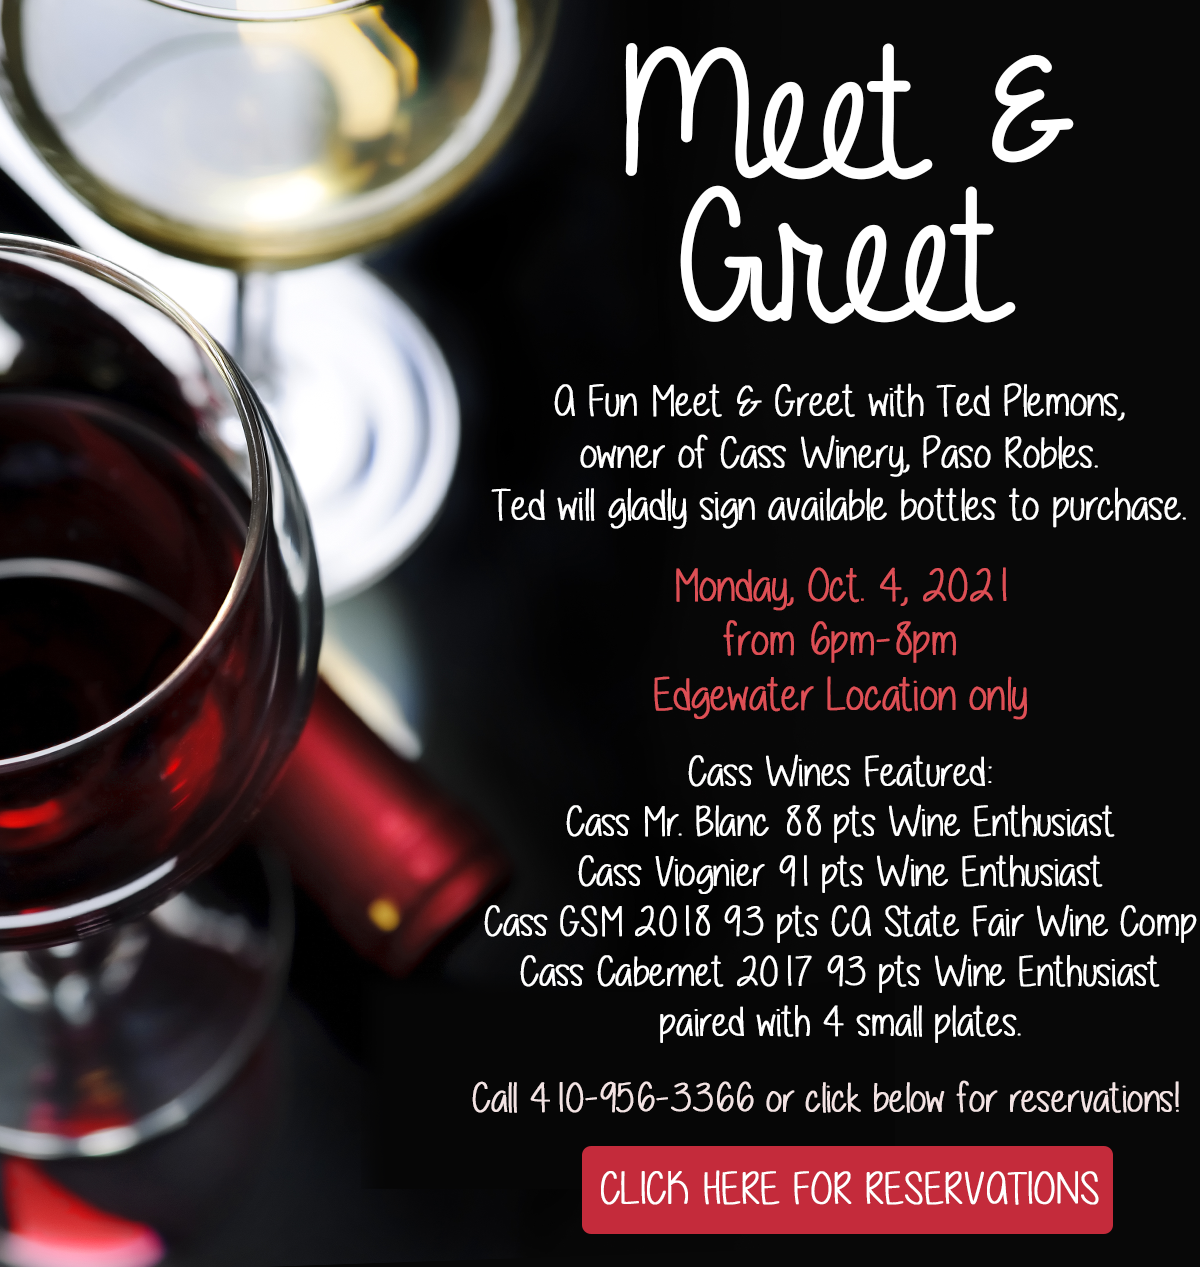 eet & Greet with Ted, winemaker of Cass Winery.  A Fun Meet & Greet with Ted Plemons, owner of Cass Winery, Paso Robles Ted will gladly sign available bottles to purchase.   Monday, Oct. 4, 2021 from 6pm-8pm Edgewater Location only  Cass wines featured: Cass Mr. Blanc 88 pts Wine Enthusiast Cass Viognier 91pts Wine Enthusiast Cass GSM 2018 93 pts CA State Fair Wine Comp Cass Cabernet 2017 93pts Wine Enthusiast paired with 4 small plates.  For reservations click here  To call for reservations: 410-956-3366